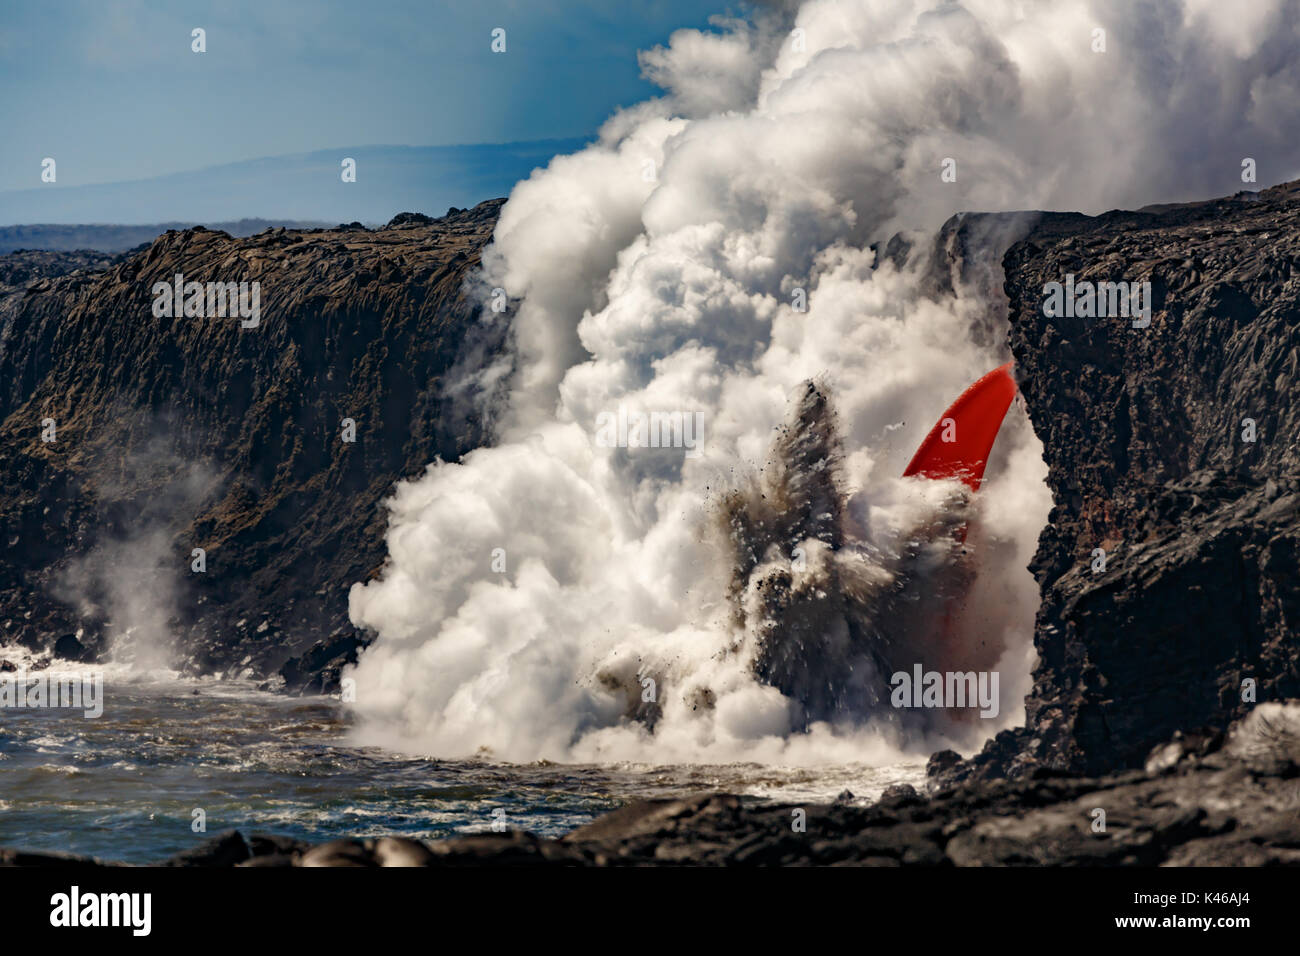 Aerial daytime view of fire hose waterfall shaped flow of red lava from volcano in Hawaii exploding into the ocean - Stock Image